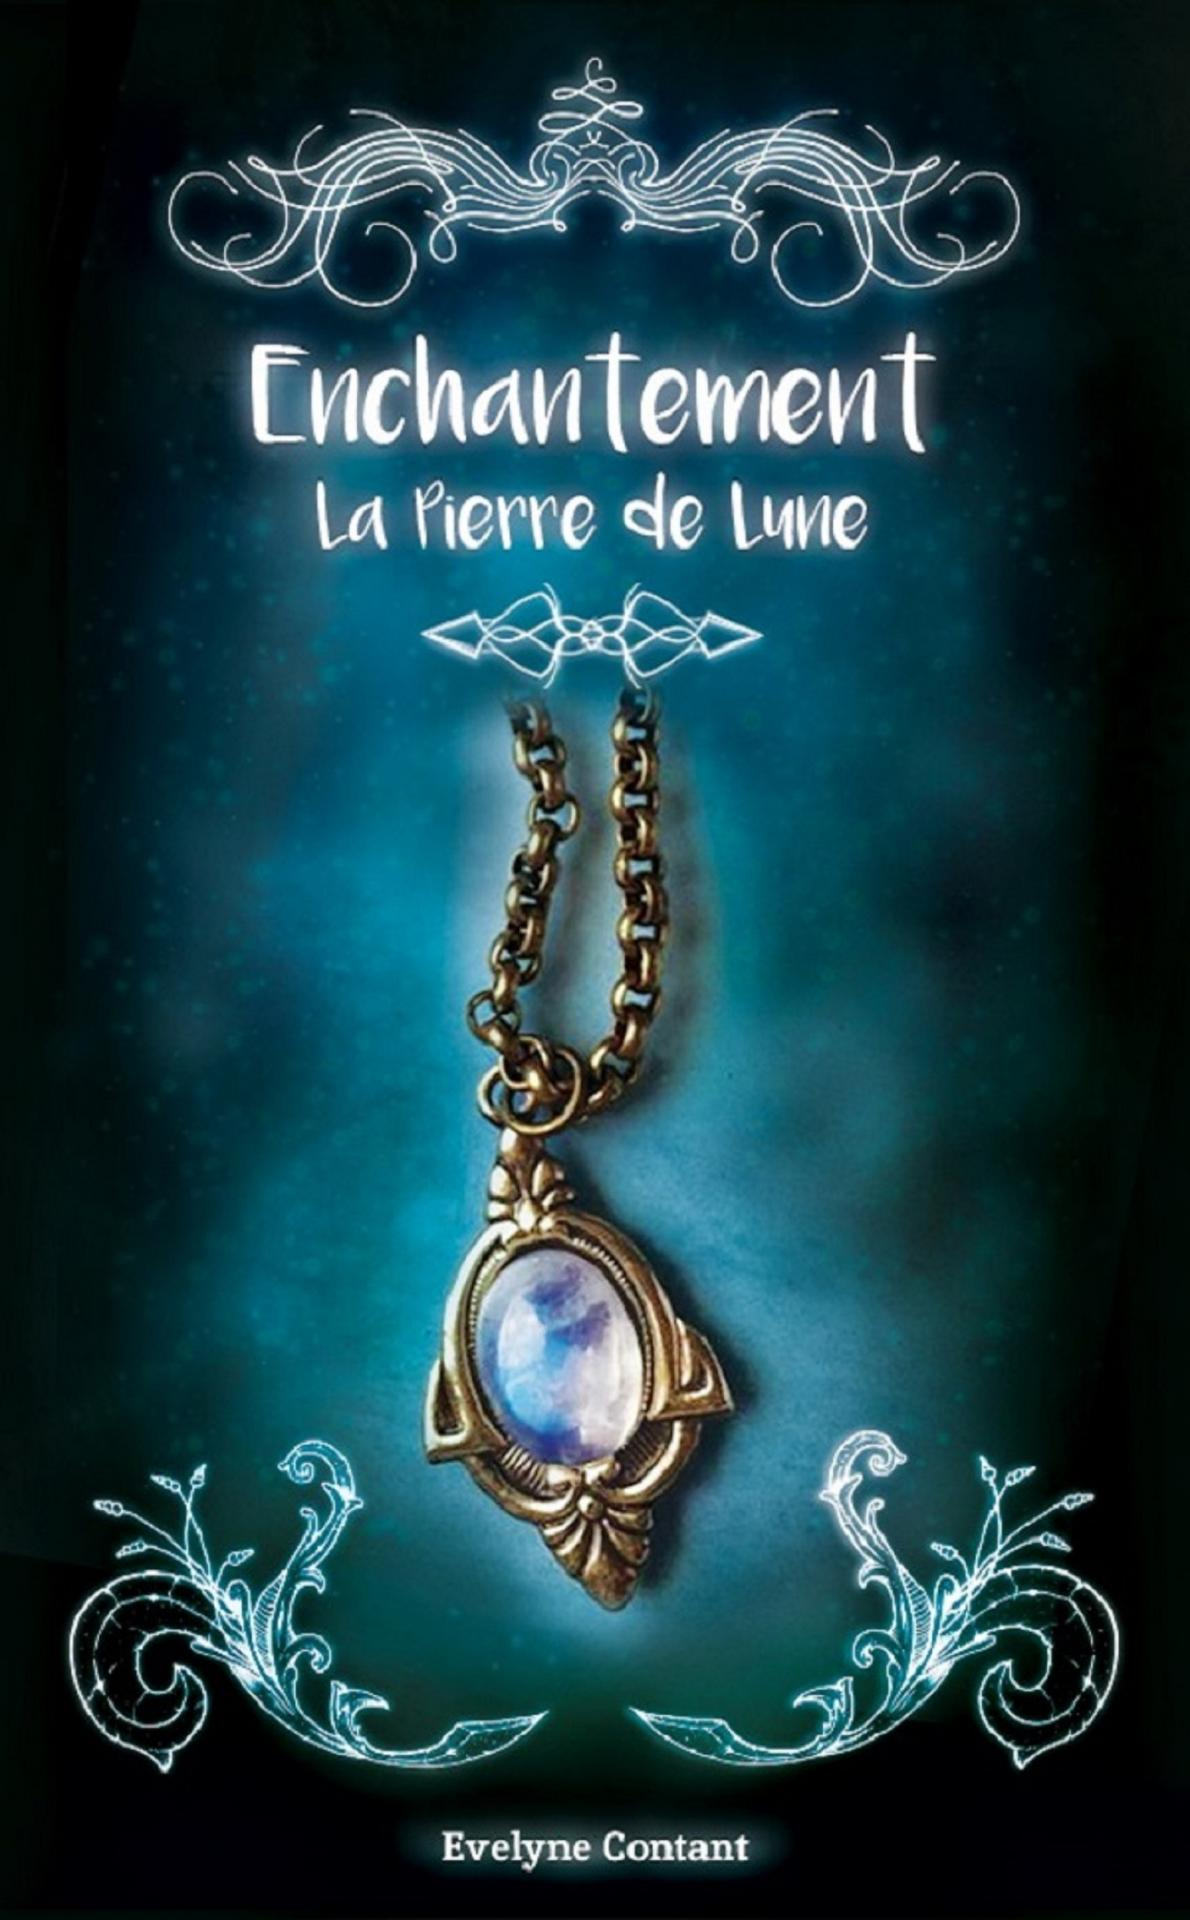 Enchantement tome 1 la pierre de lune 705214